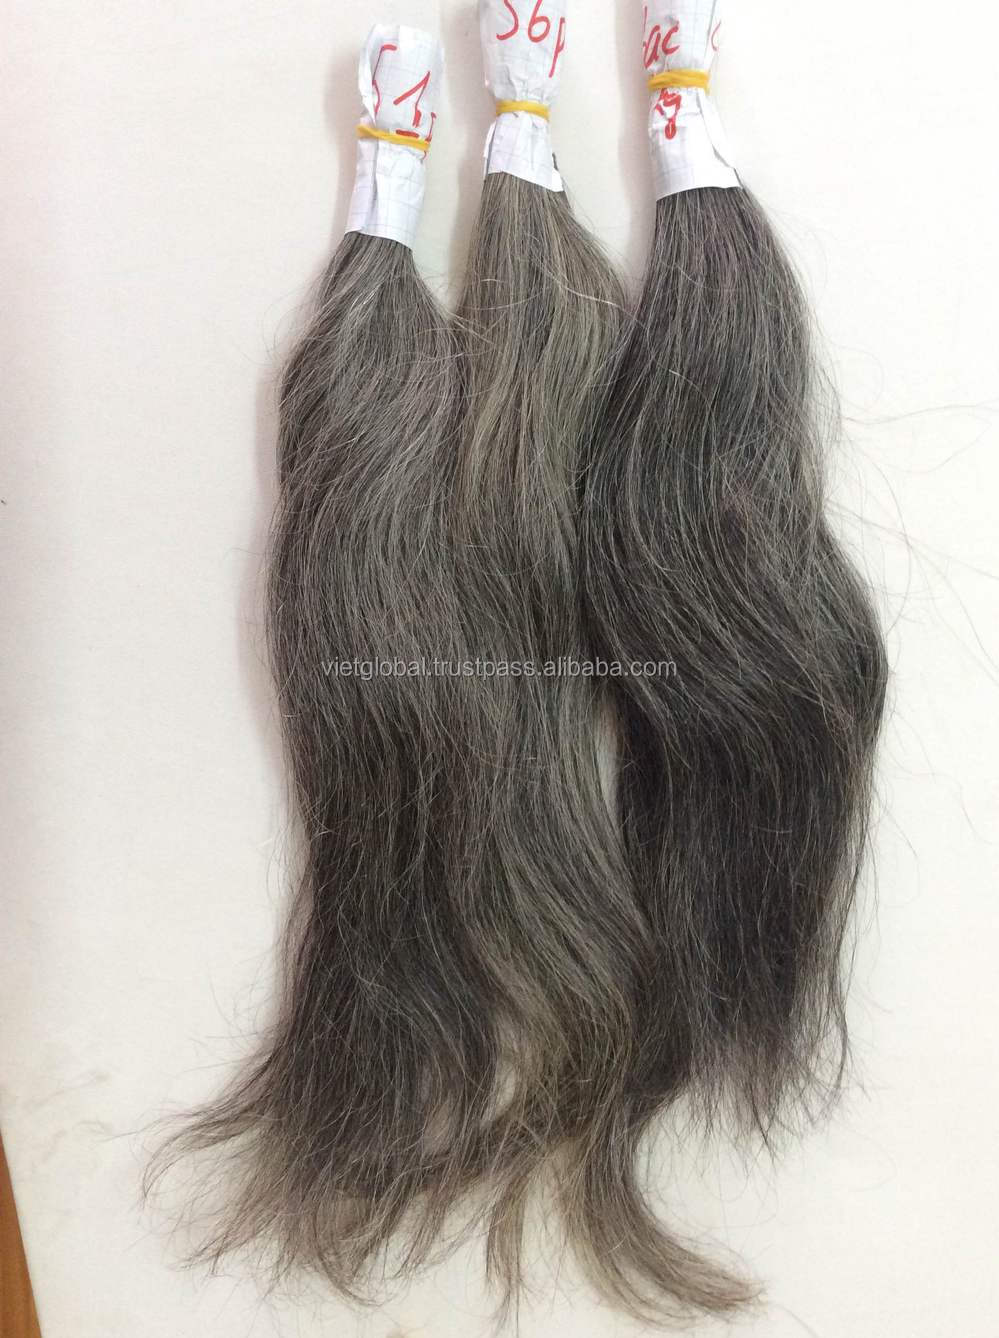 grey hair extensions from Vietnam manufactory high quality